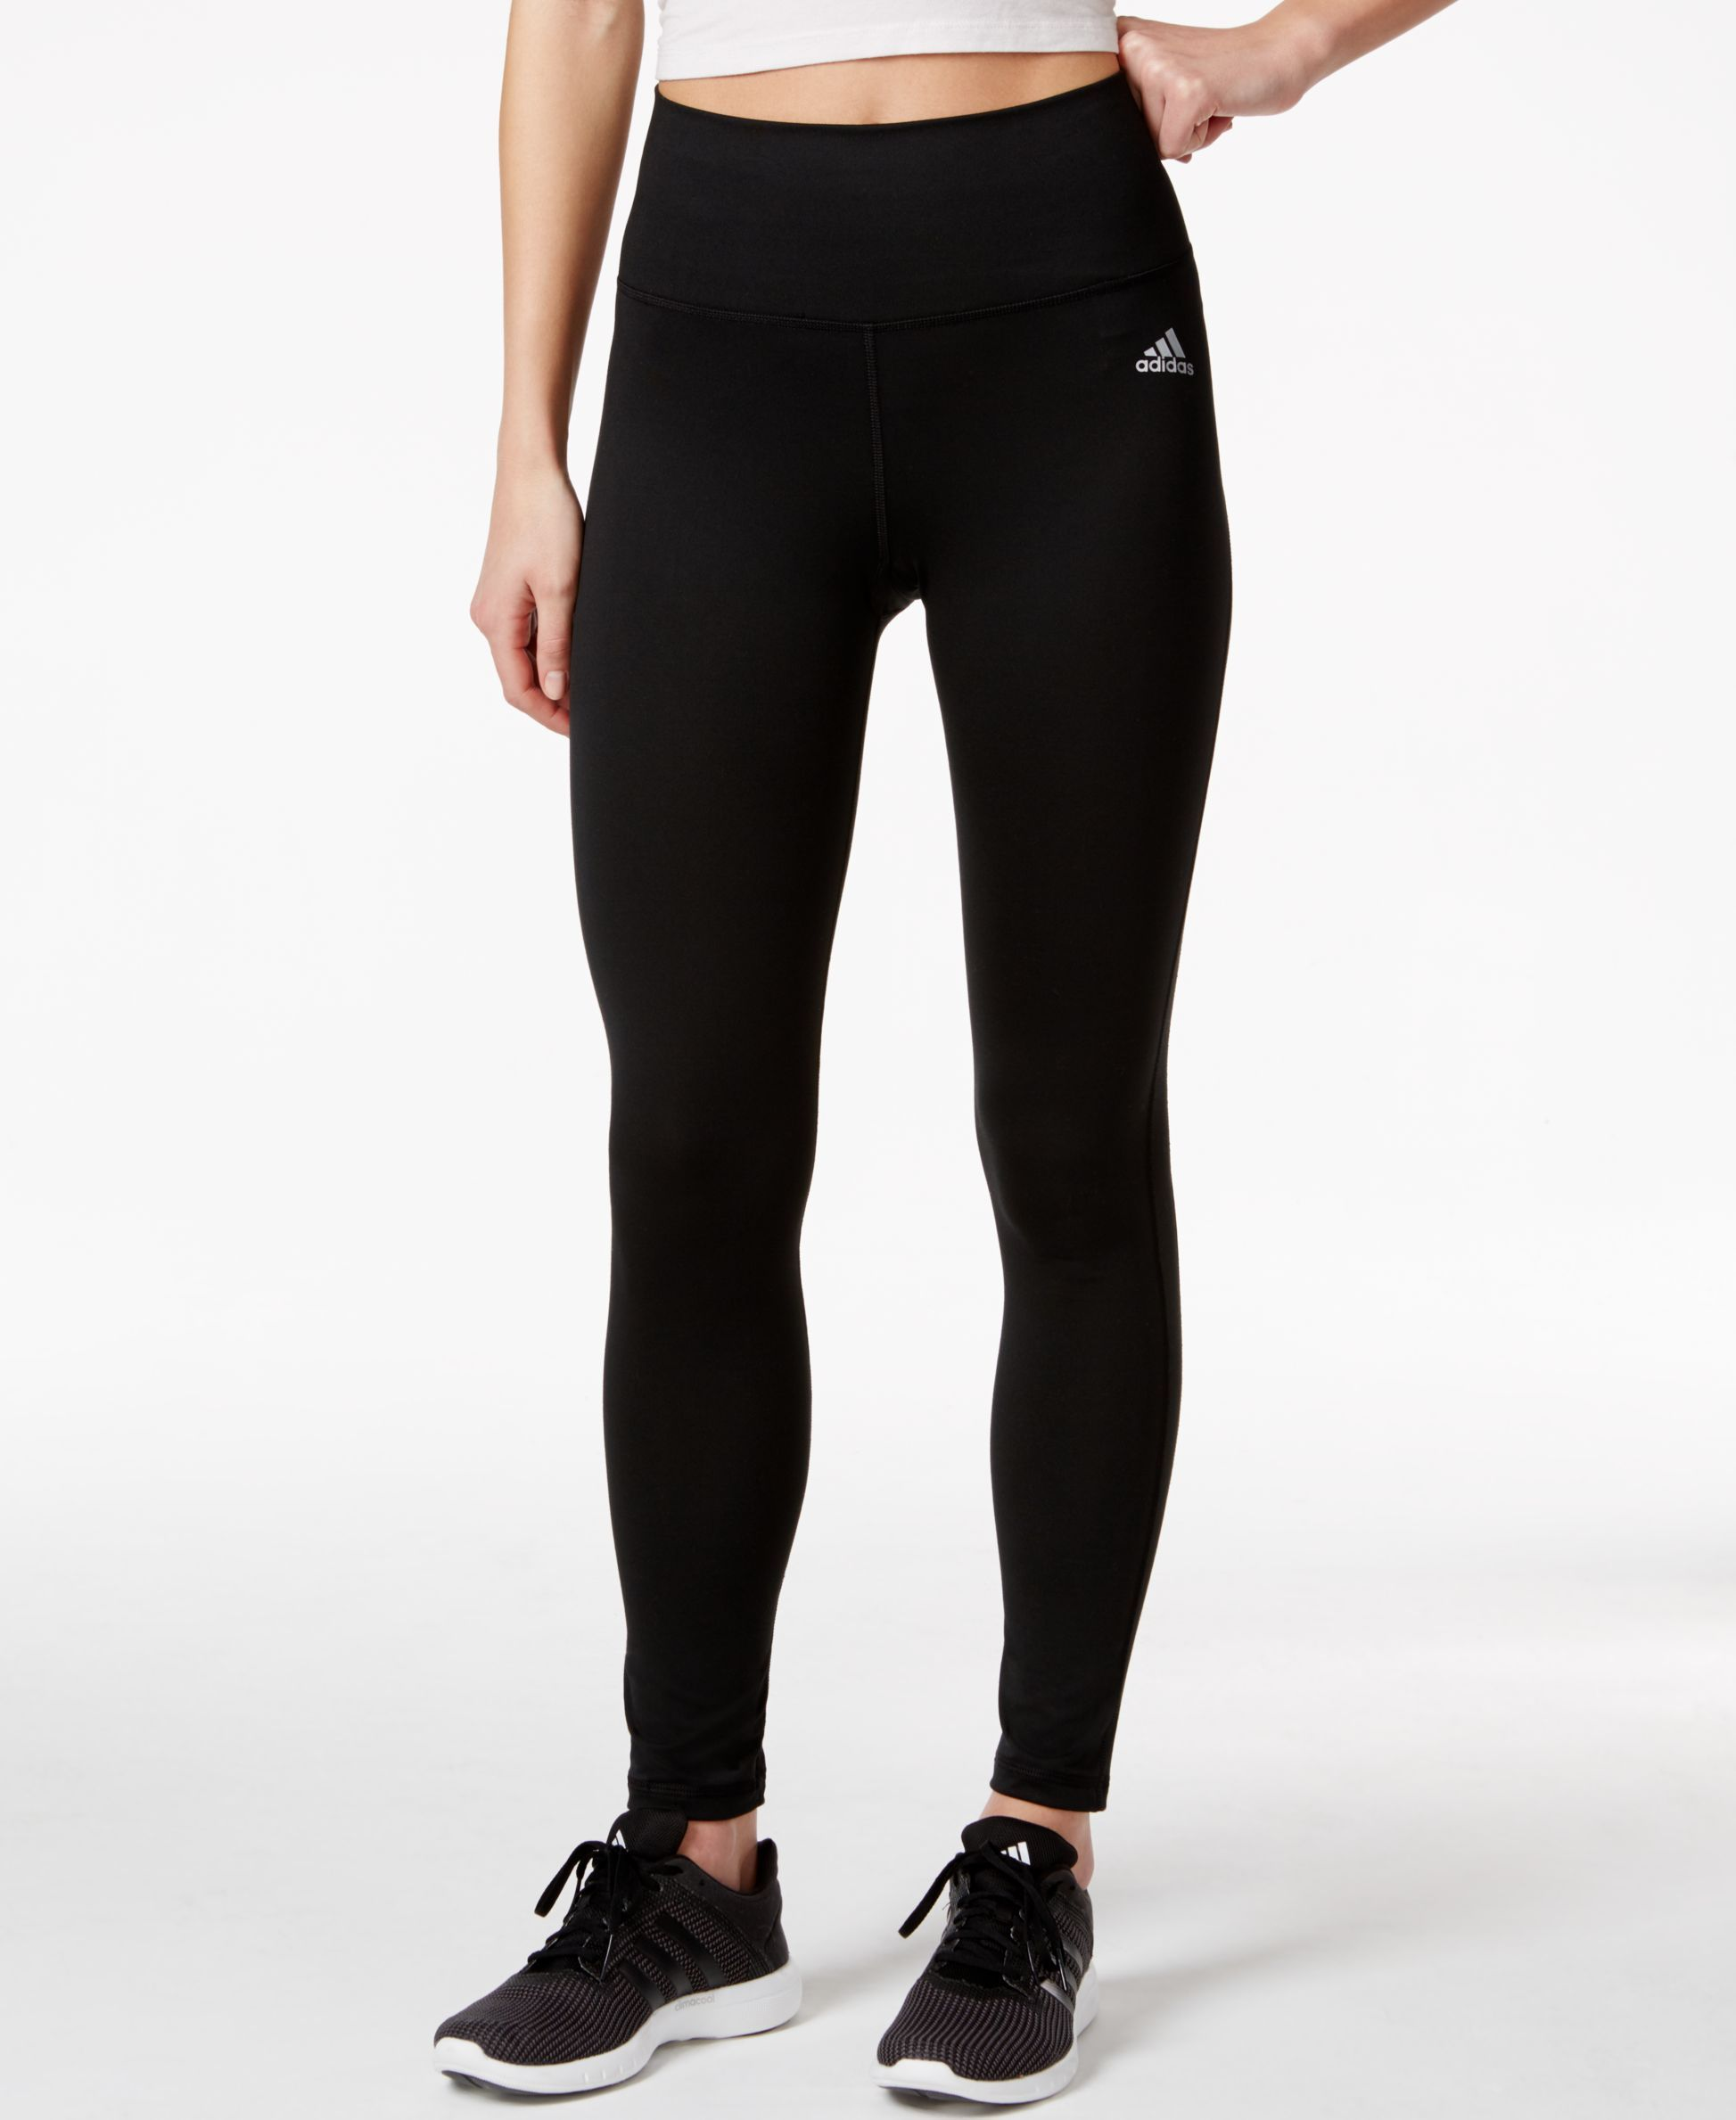 d7d86fbfa1b8b adidas gives you another proven Performer: Body-hugging compression fit and  ClimaLite comfort in high-rise leggings. | Polyester/elastane | Machine  washable ...